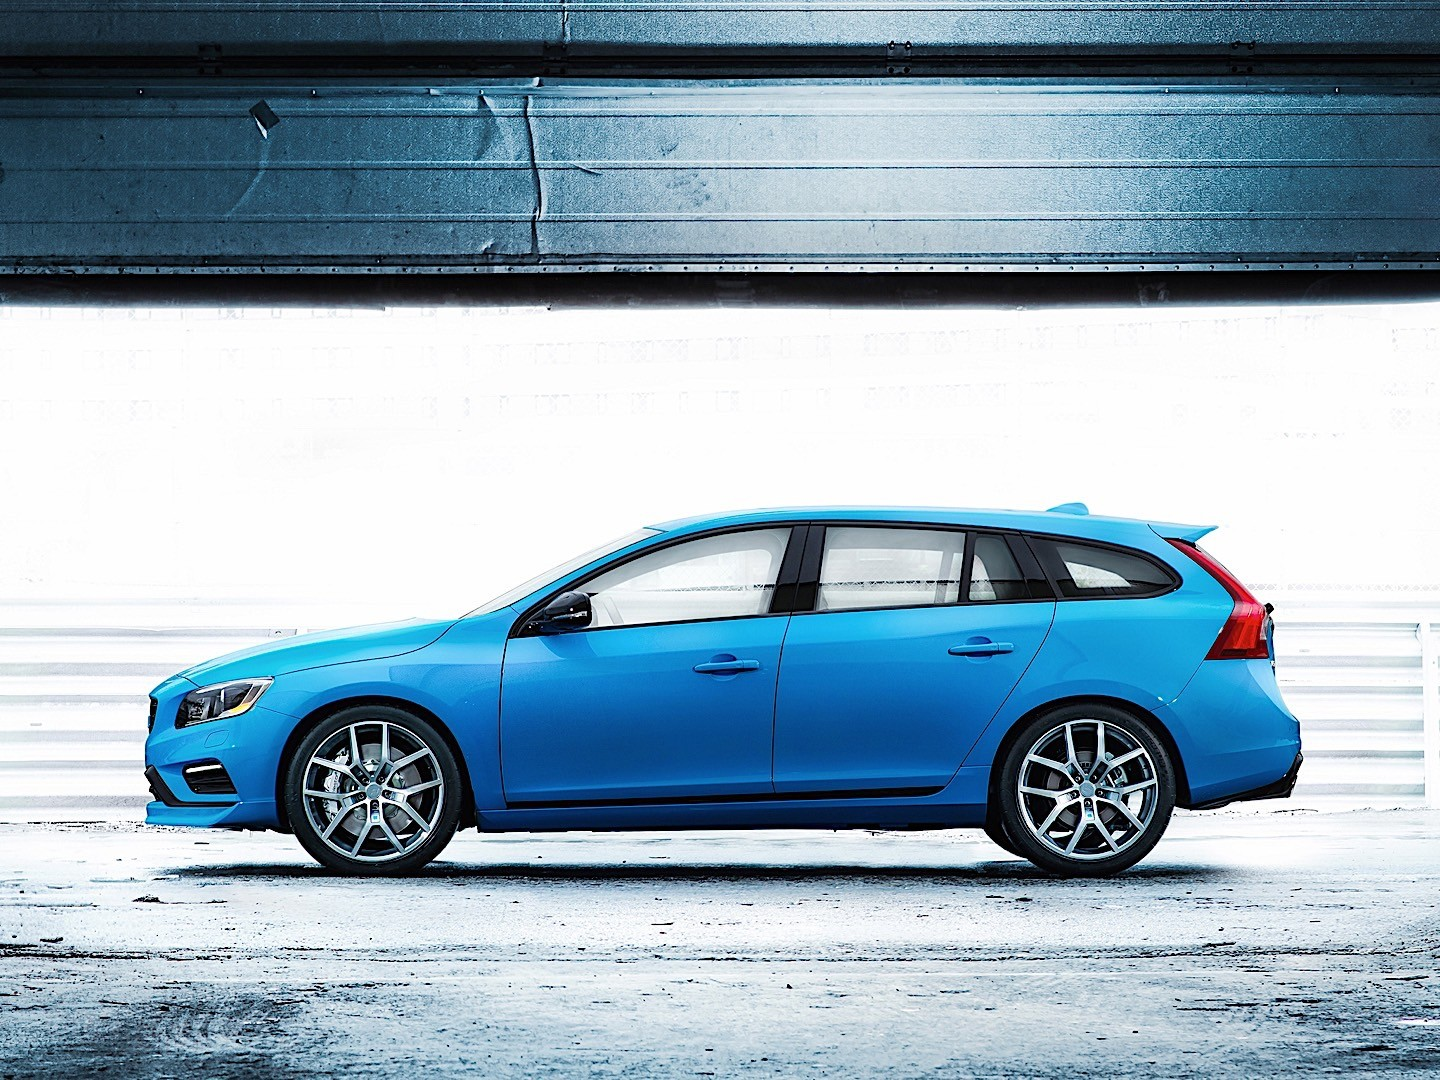 volvo v60 polestar specs 2014 2015 2016 2017 2018 autoevolution. Black Bedroom Furniture Sets. Home Design Ideas